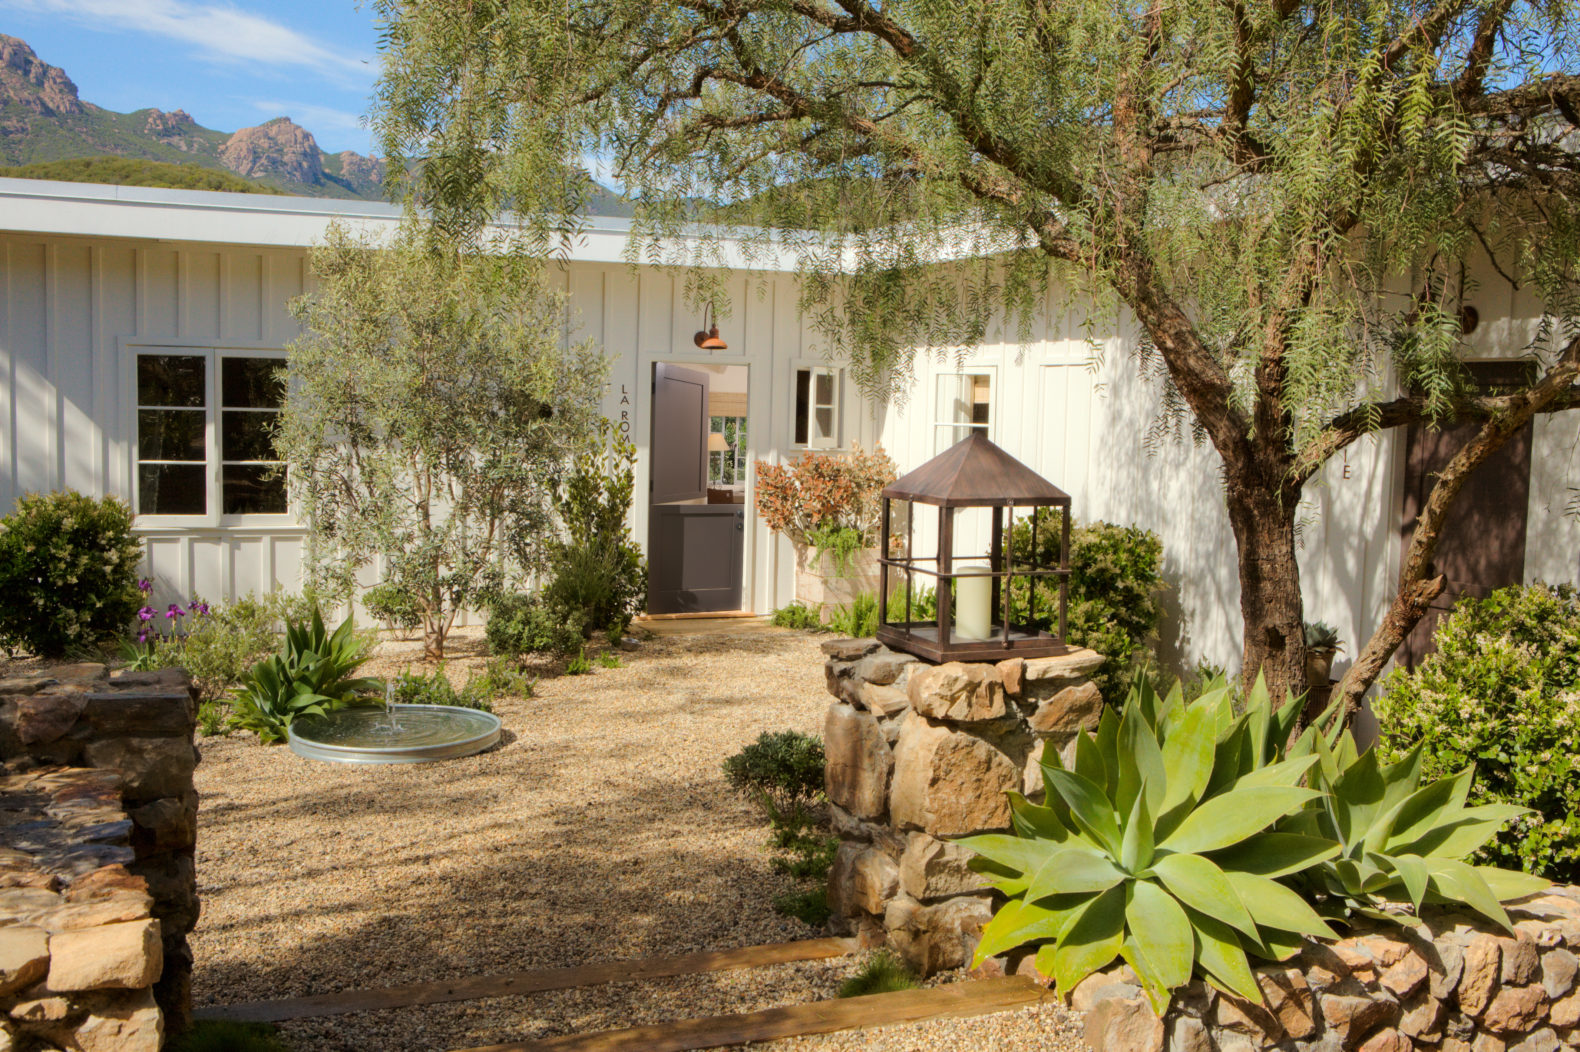 outdoor-nature-entrance-plants-the-ranch-at-live-oak-malibu-usa-america